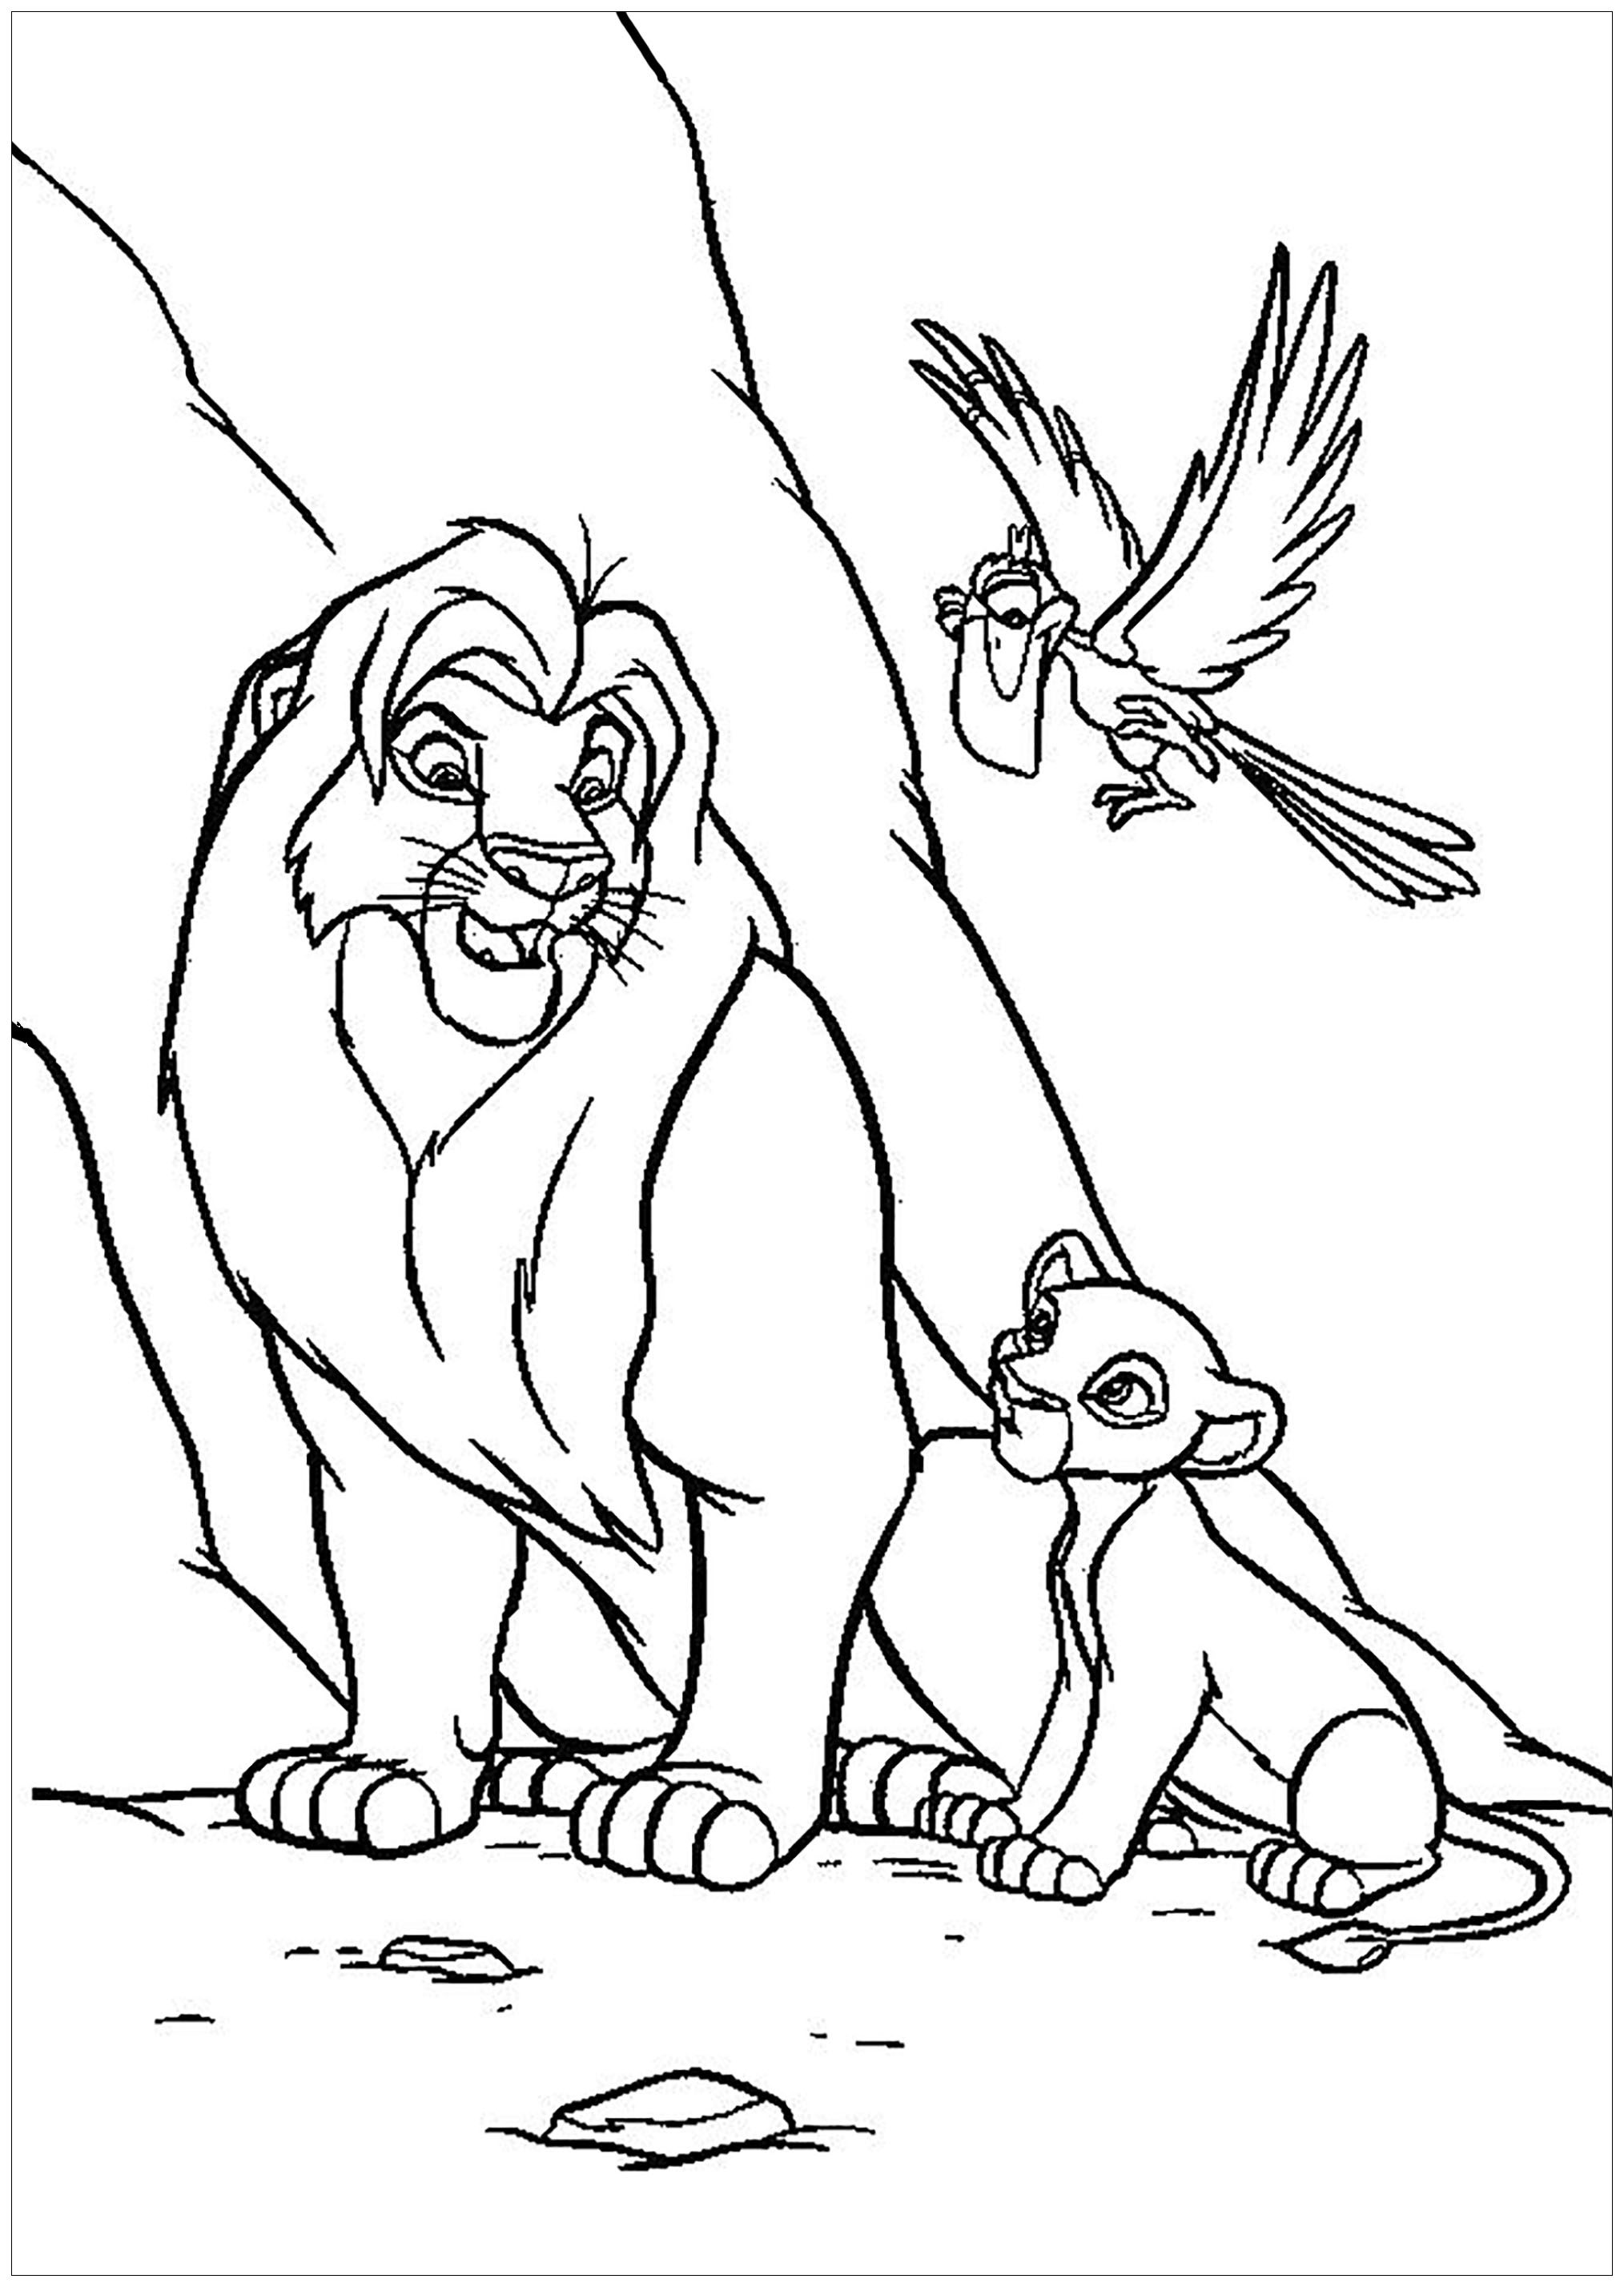 Lion King Coloring Page With Mufasa Simba And Zazu The Lion King Kids Coloring Pages